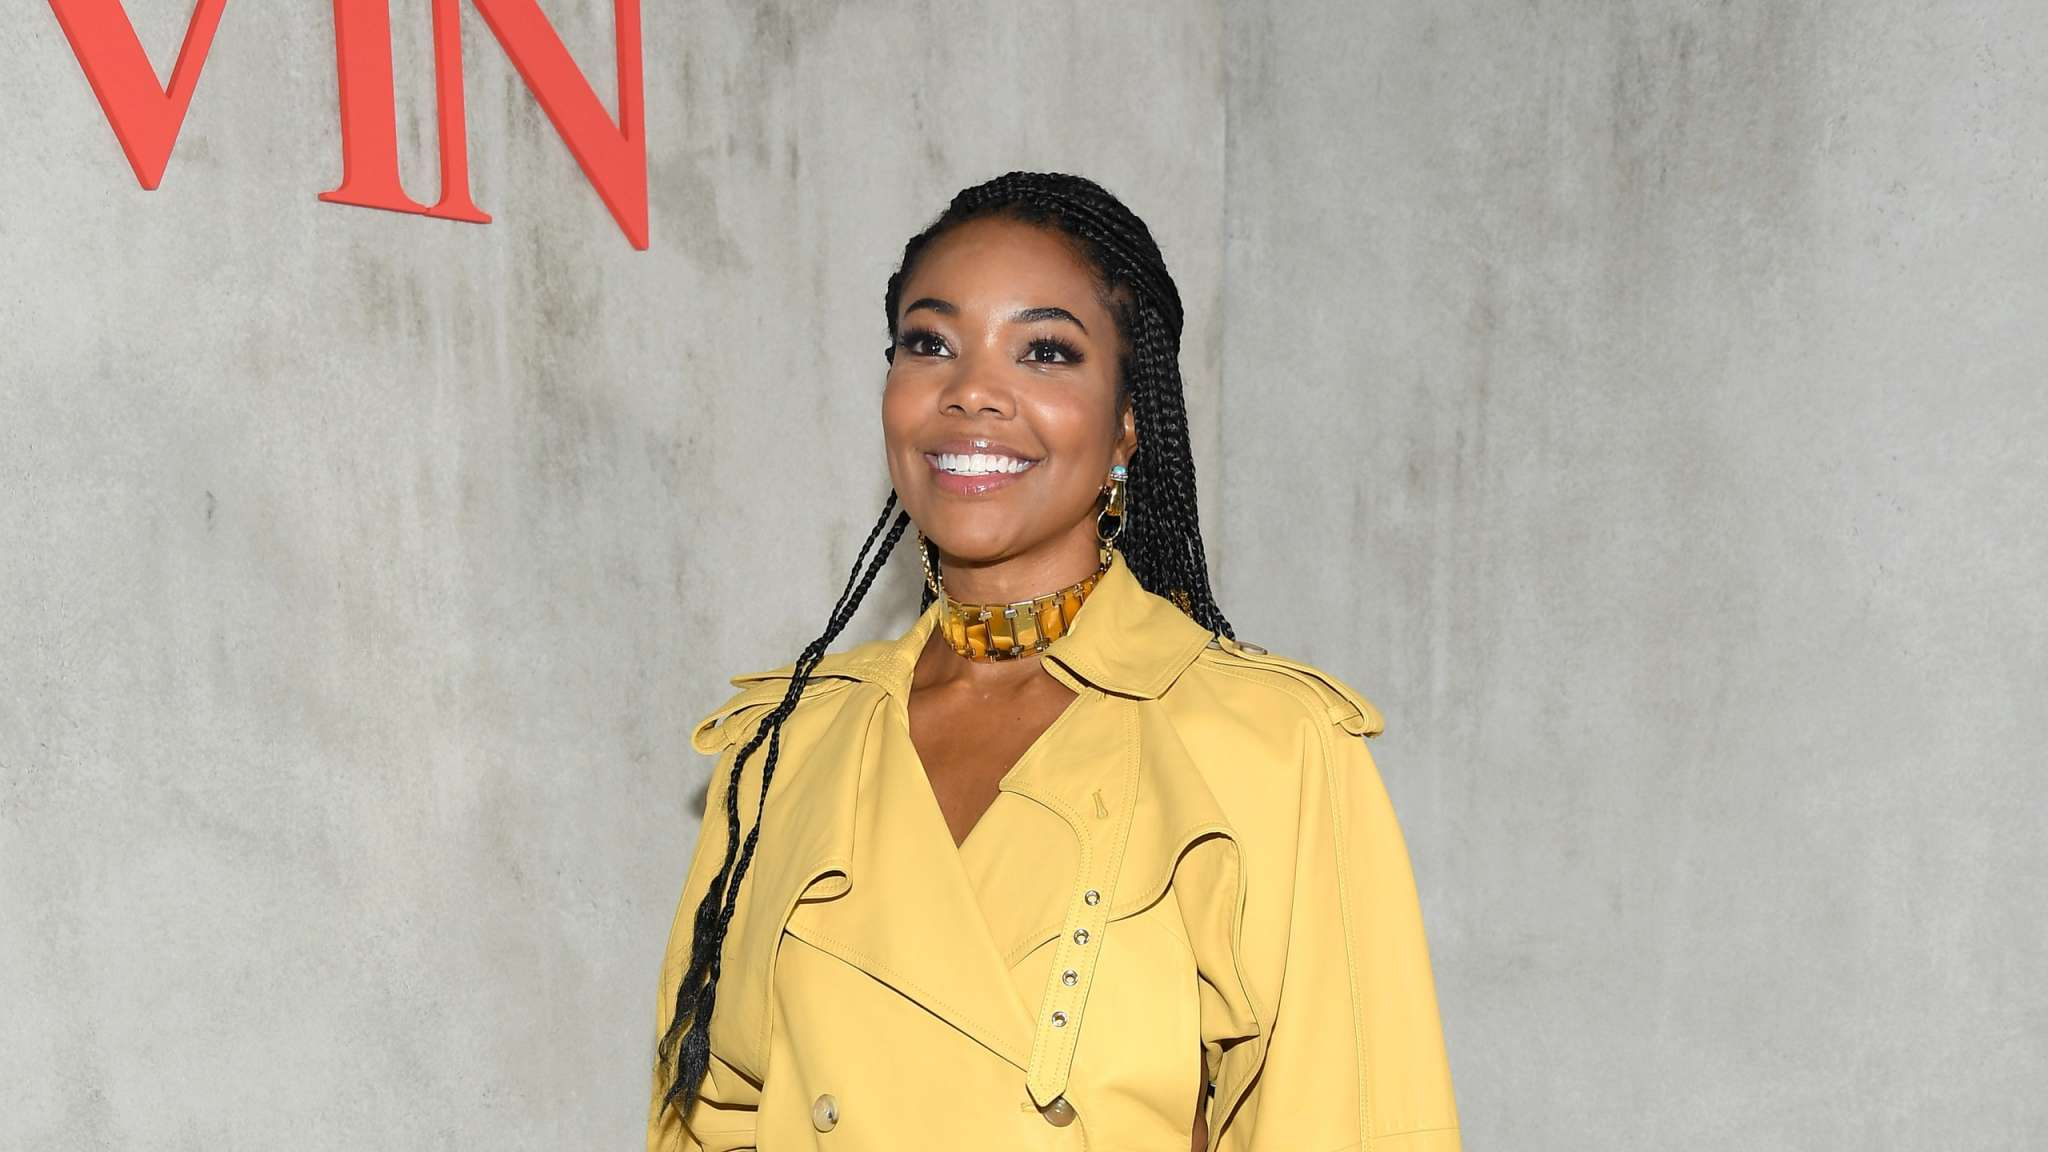 """""""gabrielle-union-flaunts-her-jaw-dropping-look-on-social-media-and-fans-are-here-for-it"""""""